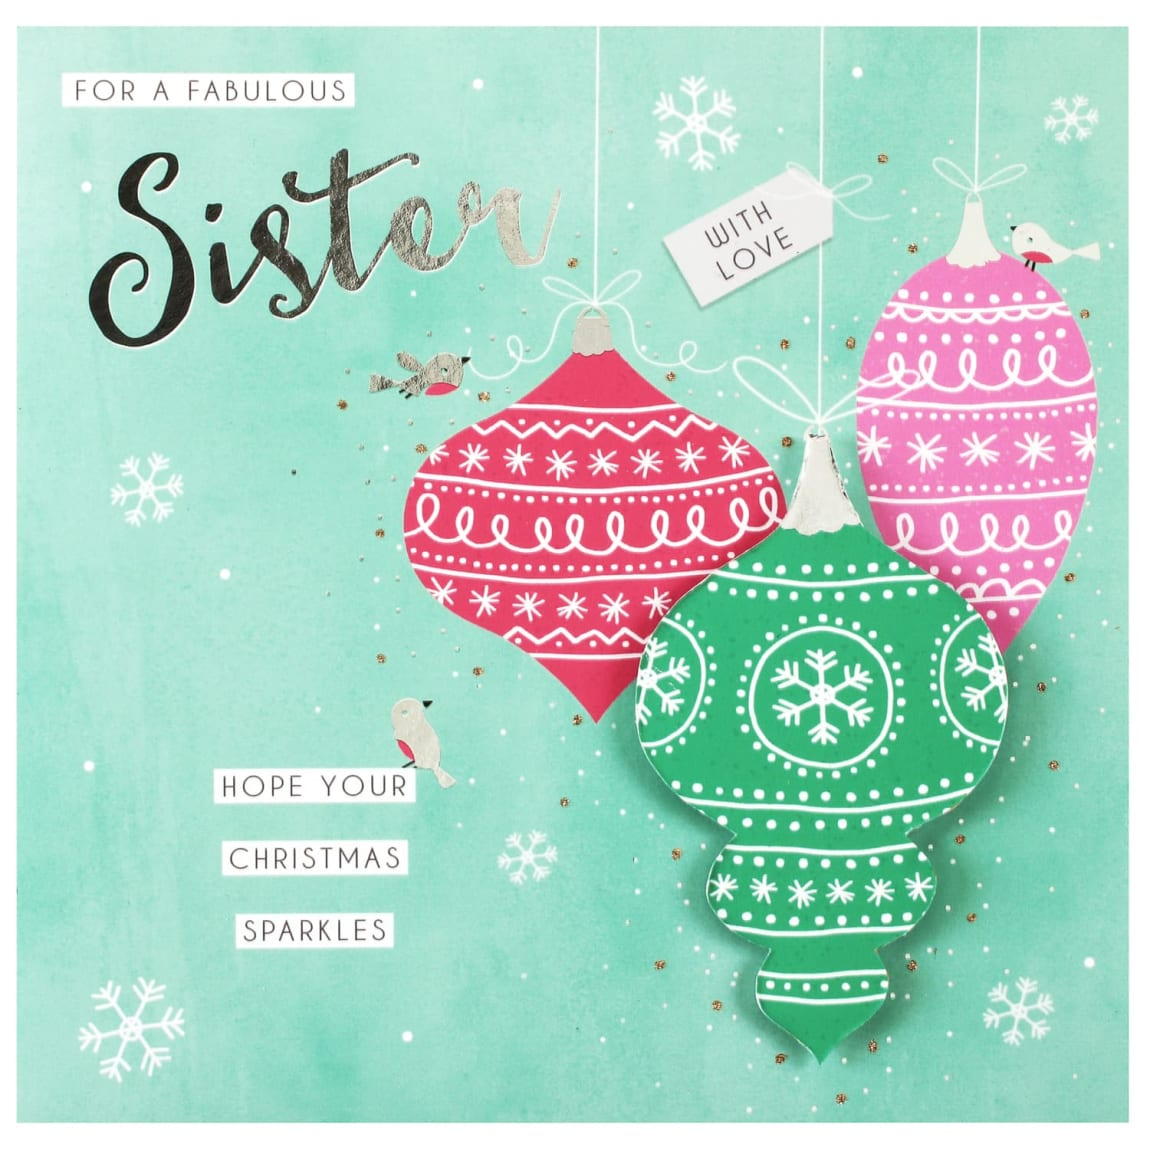 For a Fabulous Sister - Christmas Card